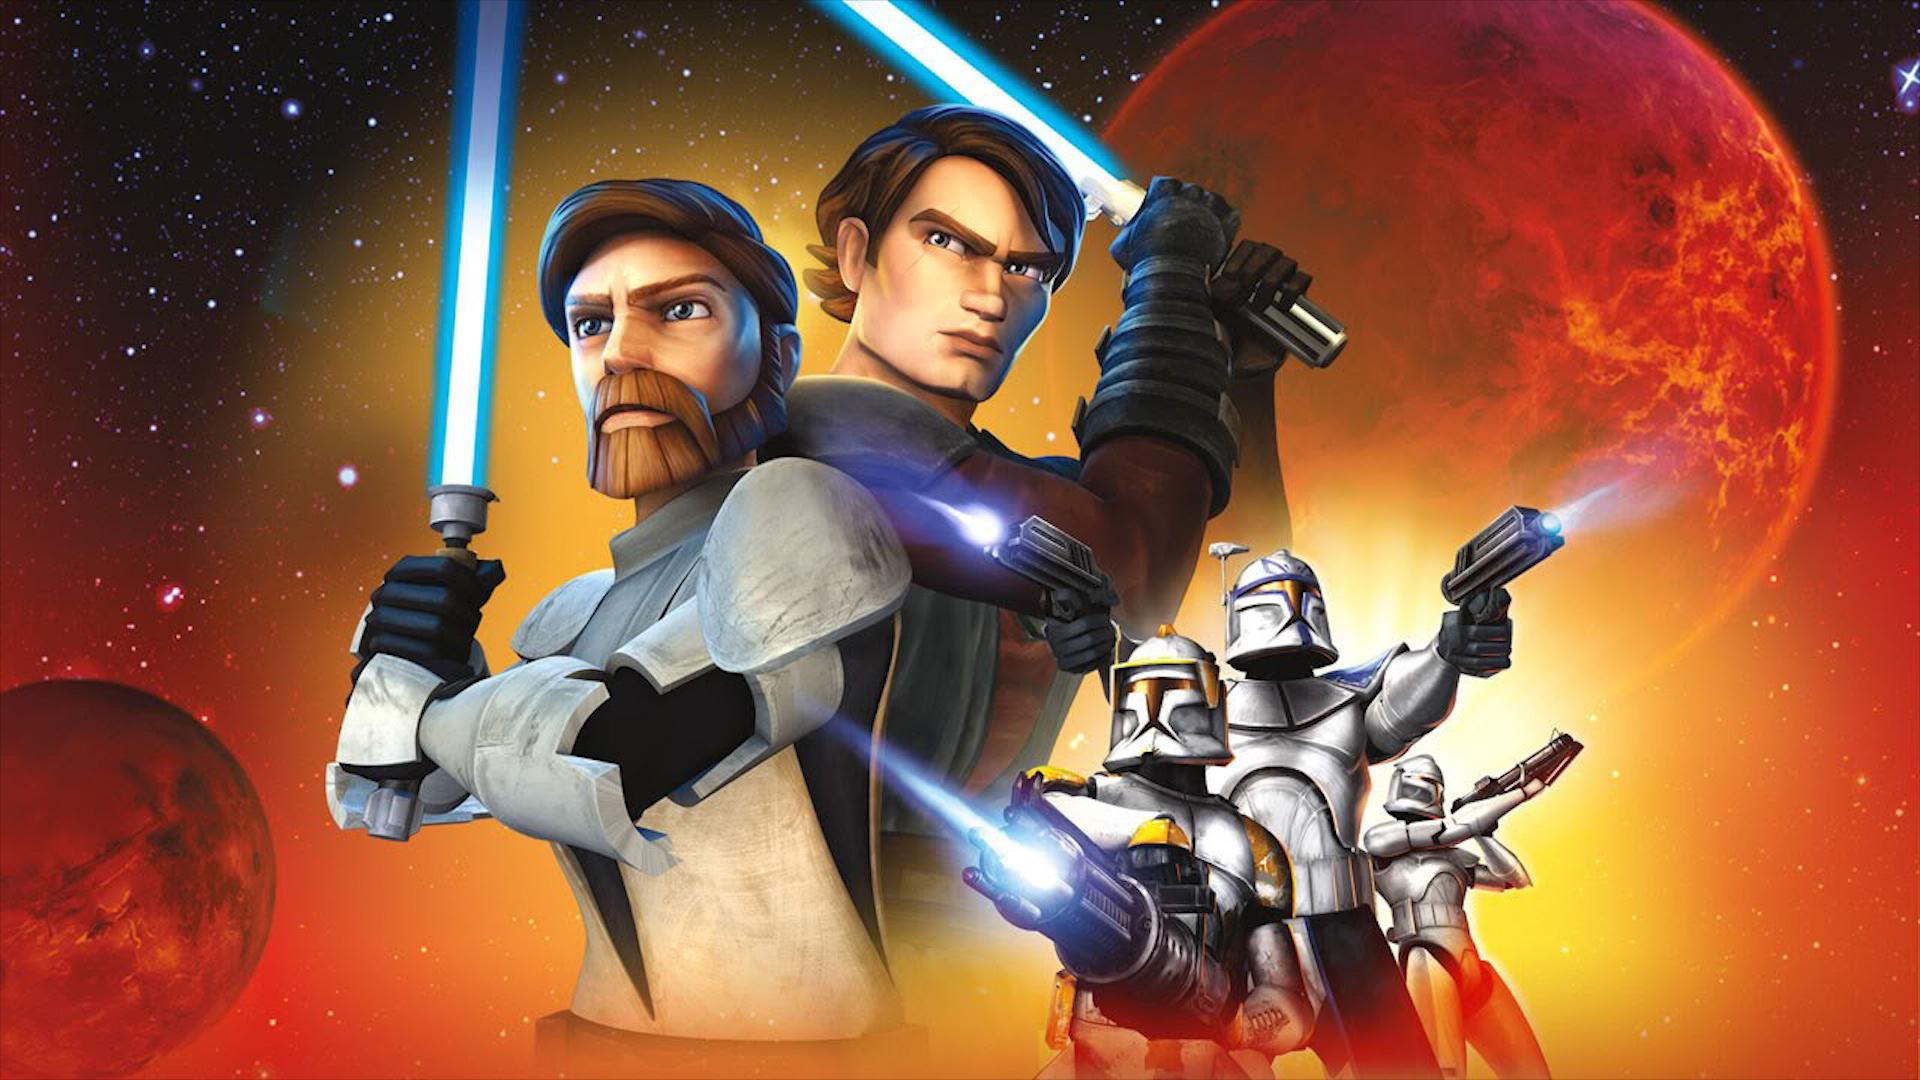 Star Wars: The Clone Wars' Revived After 2013 Cancellation